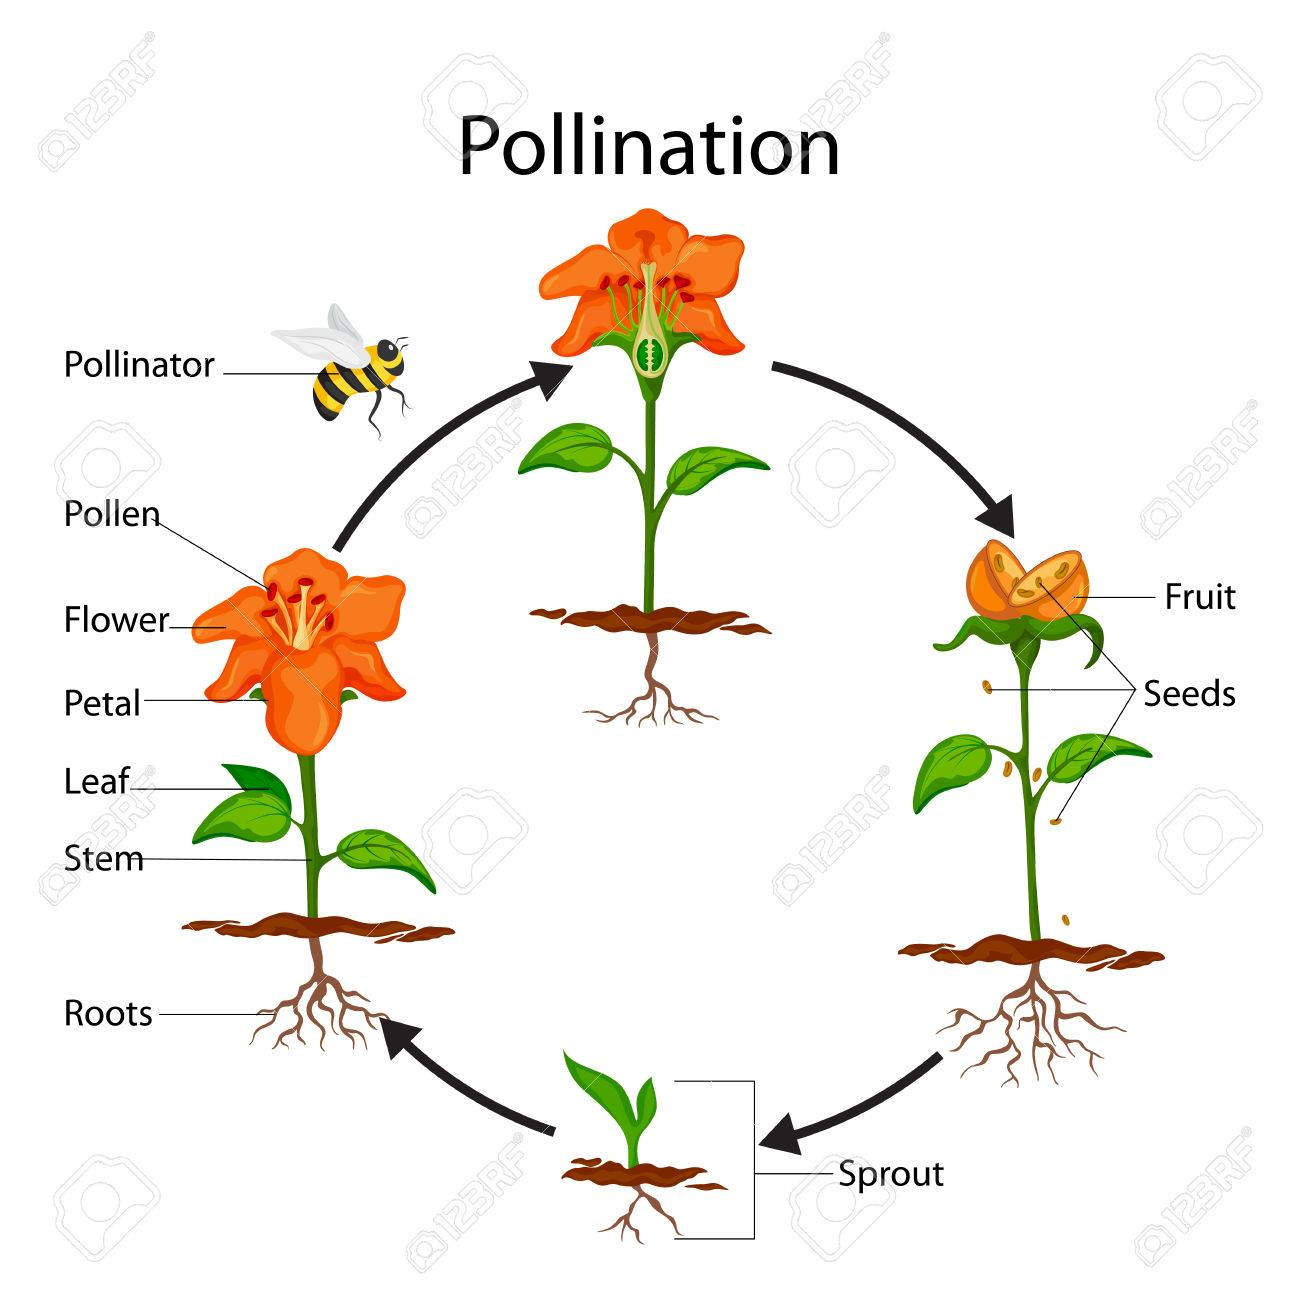 Education chart of biology for pollination process diagram stock education chart of biology for pollination process diagram stock photo 80713900 ccuart Images